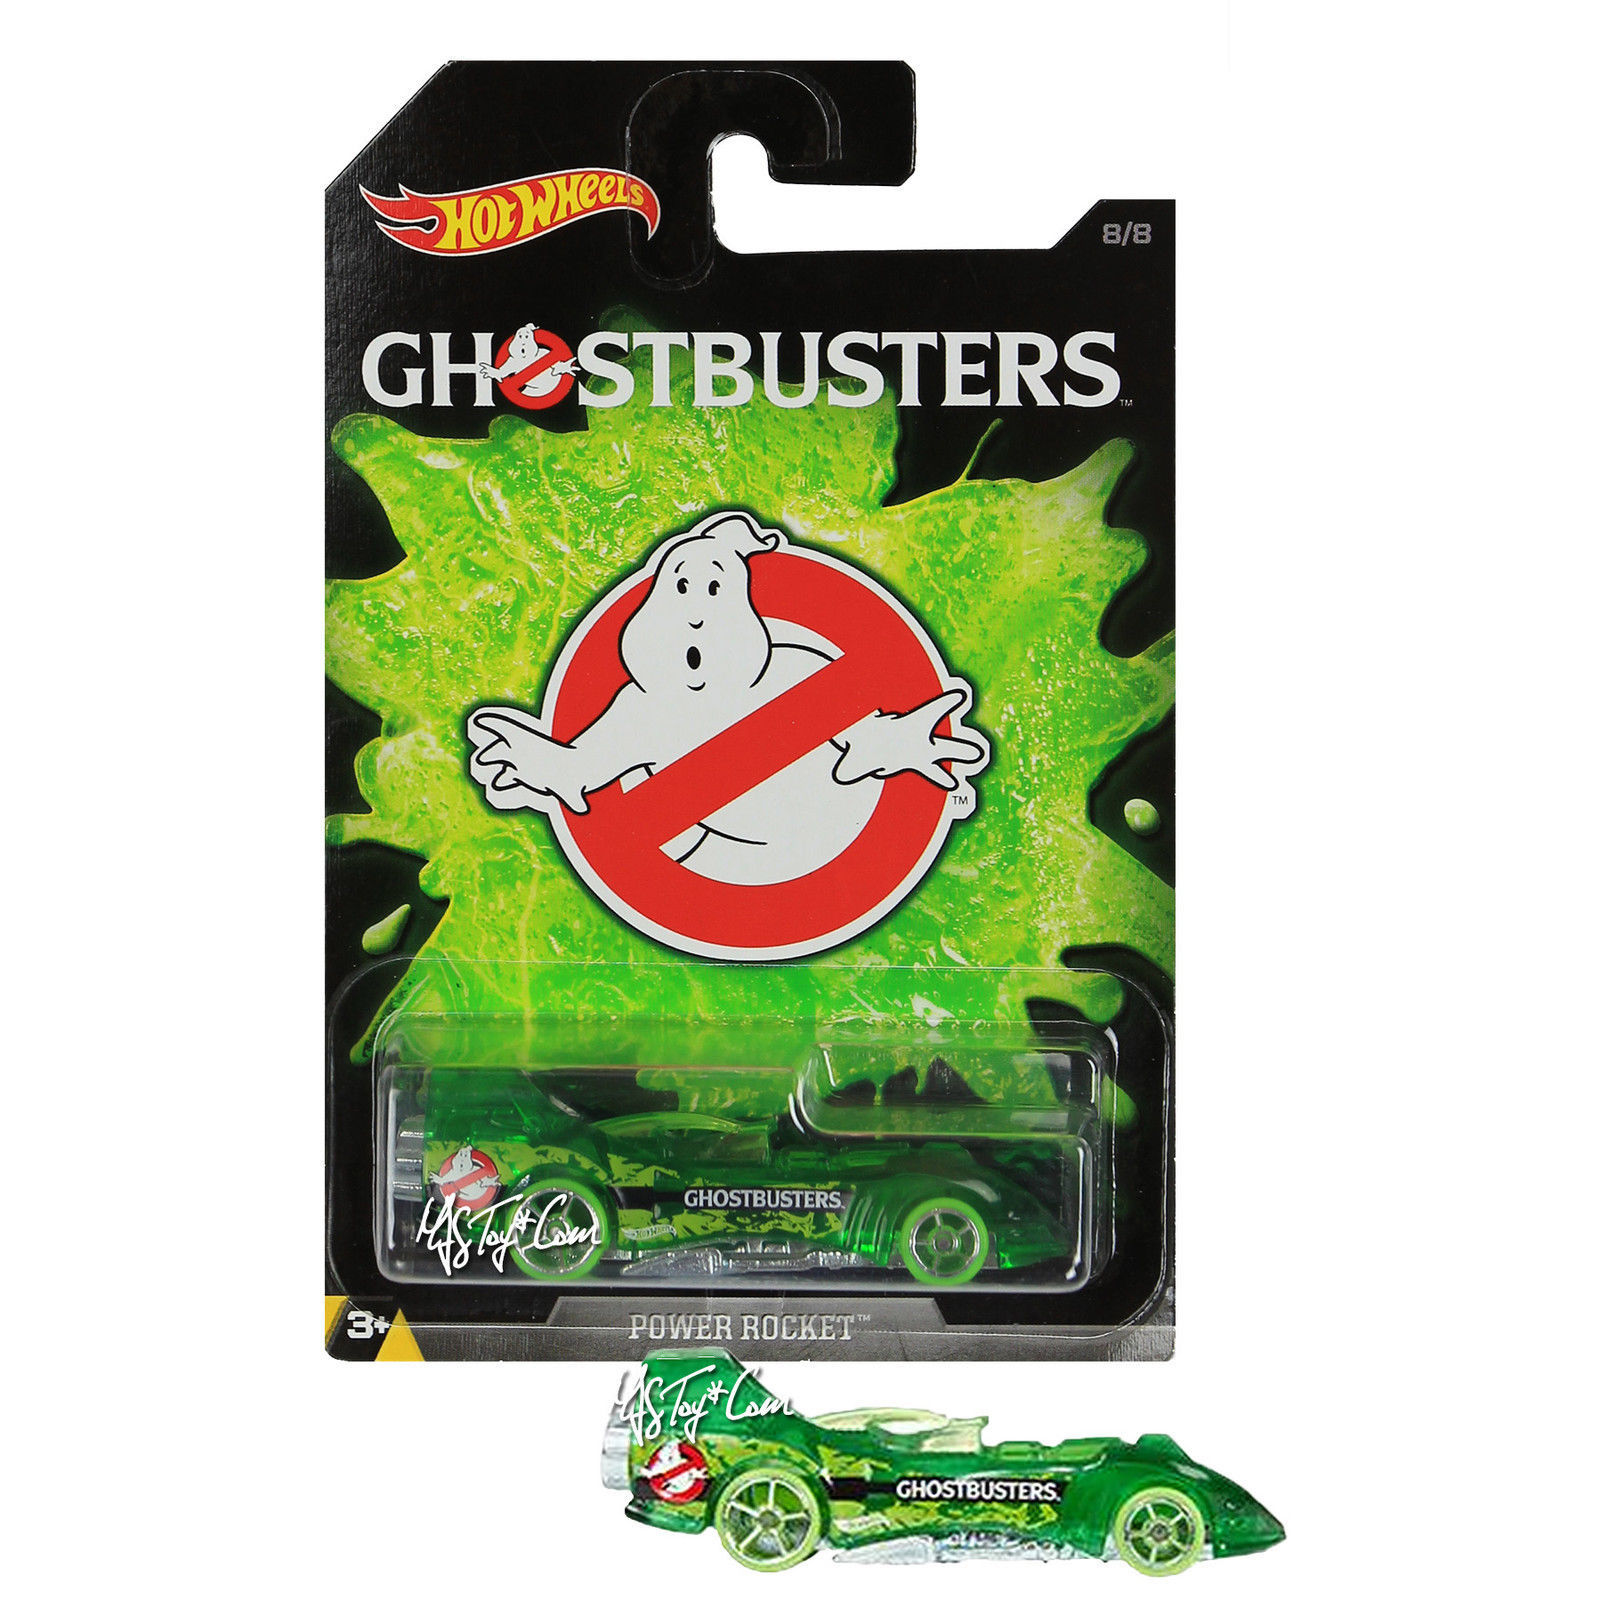 NEW 2016 Hot Wheels 1:64 Die Cast Car GHOSTBUSTERS Exclusive Power Rocket 8/8